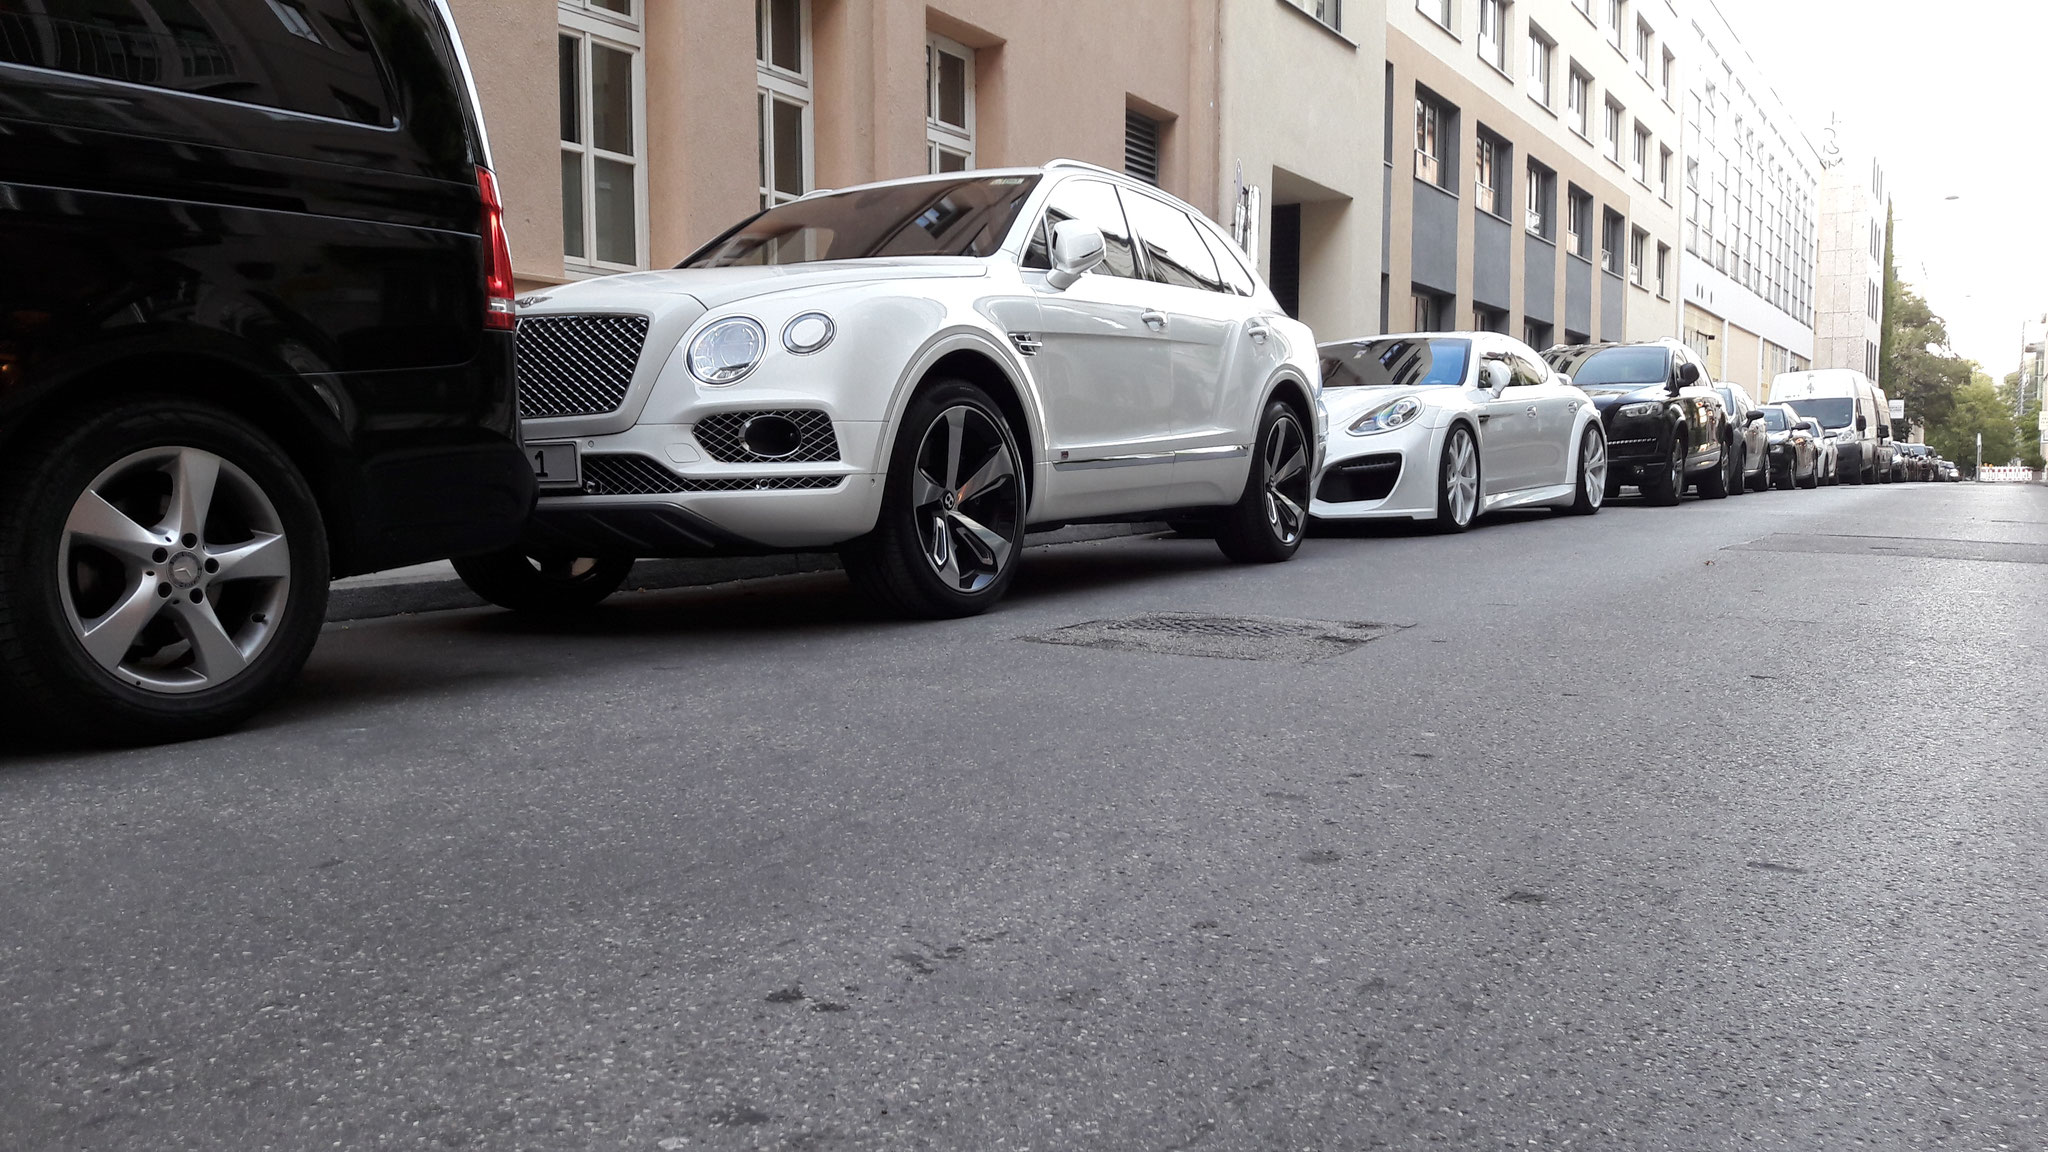 Bentley Bentayga - M-LI-1